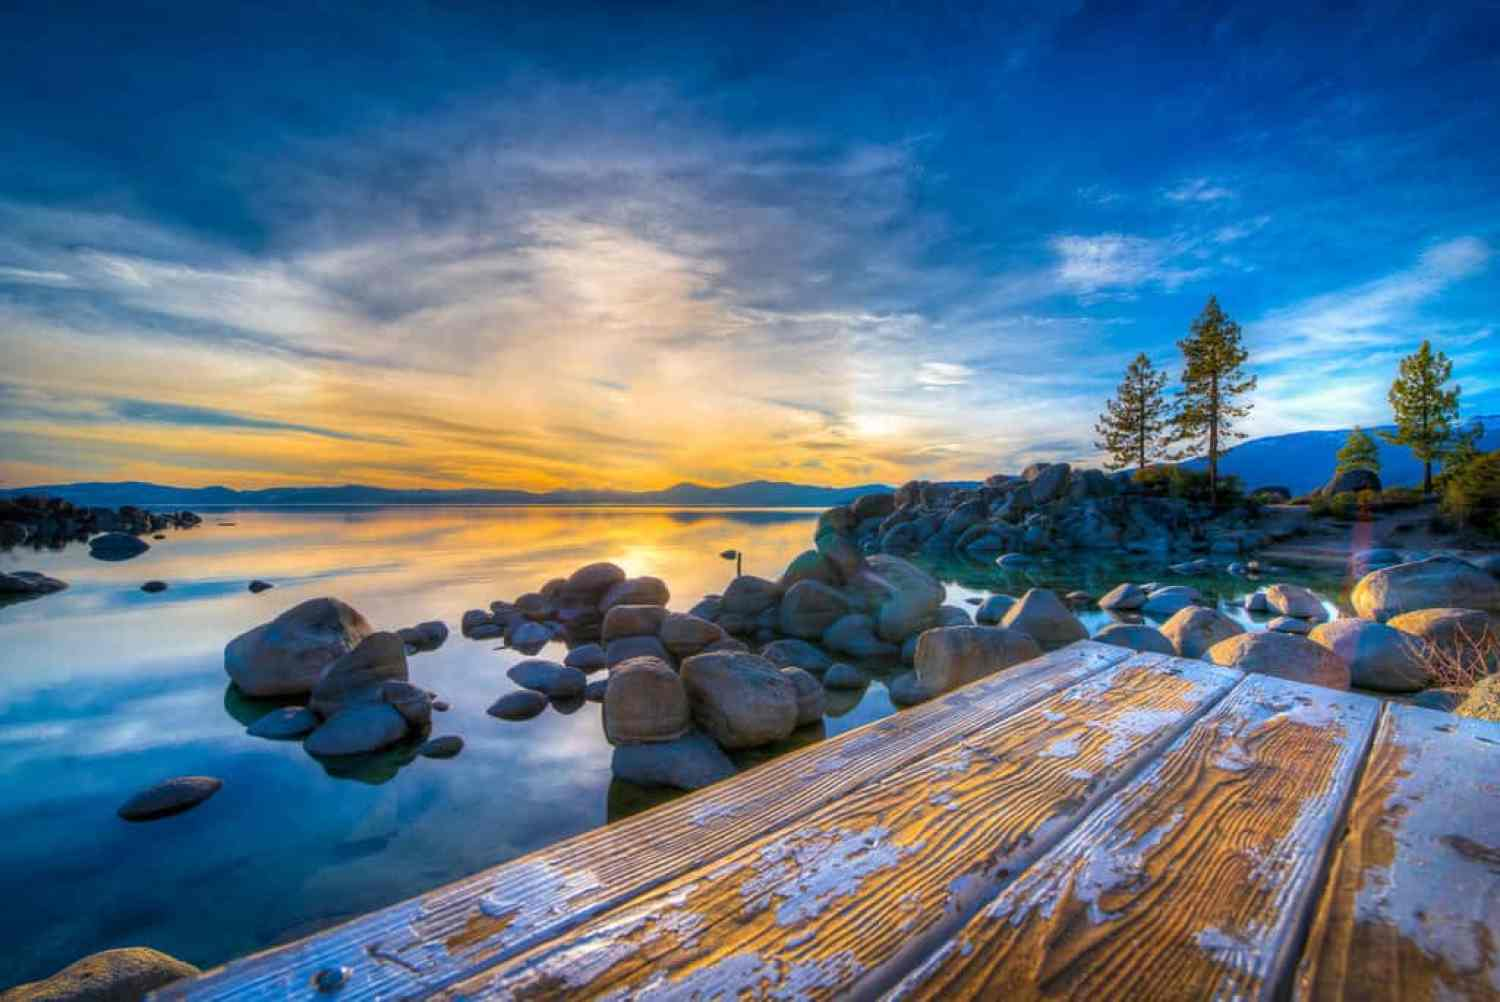 Best places to photograph in lake tahoe